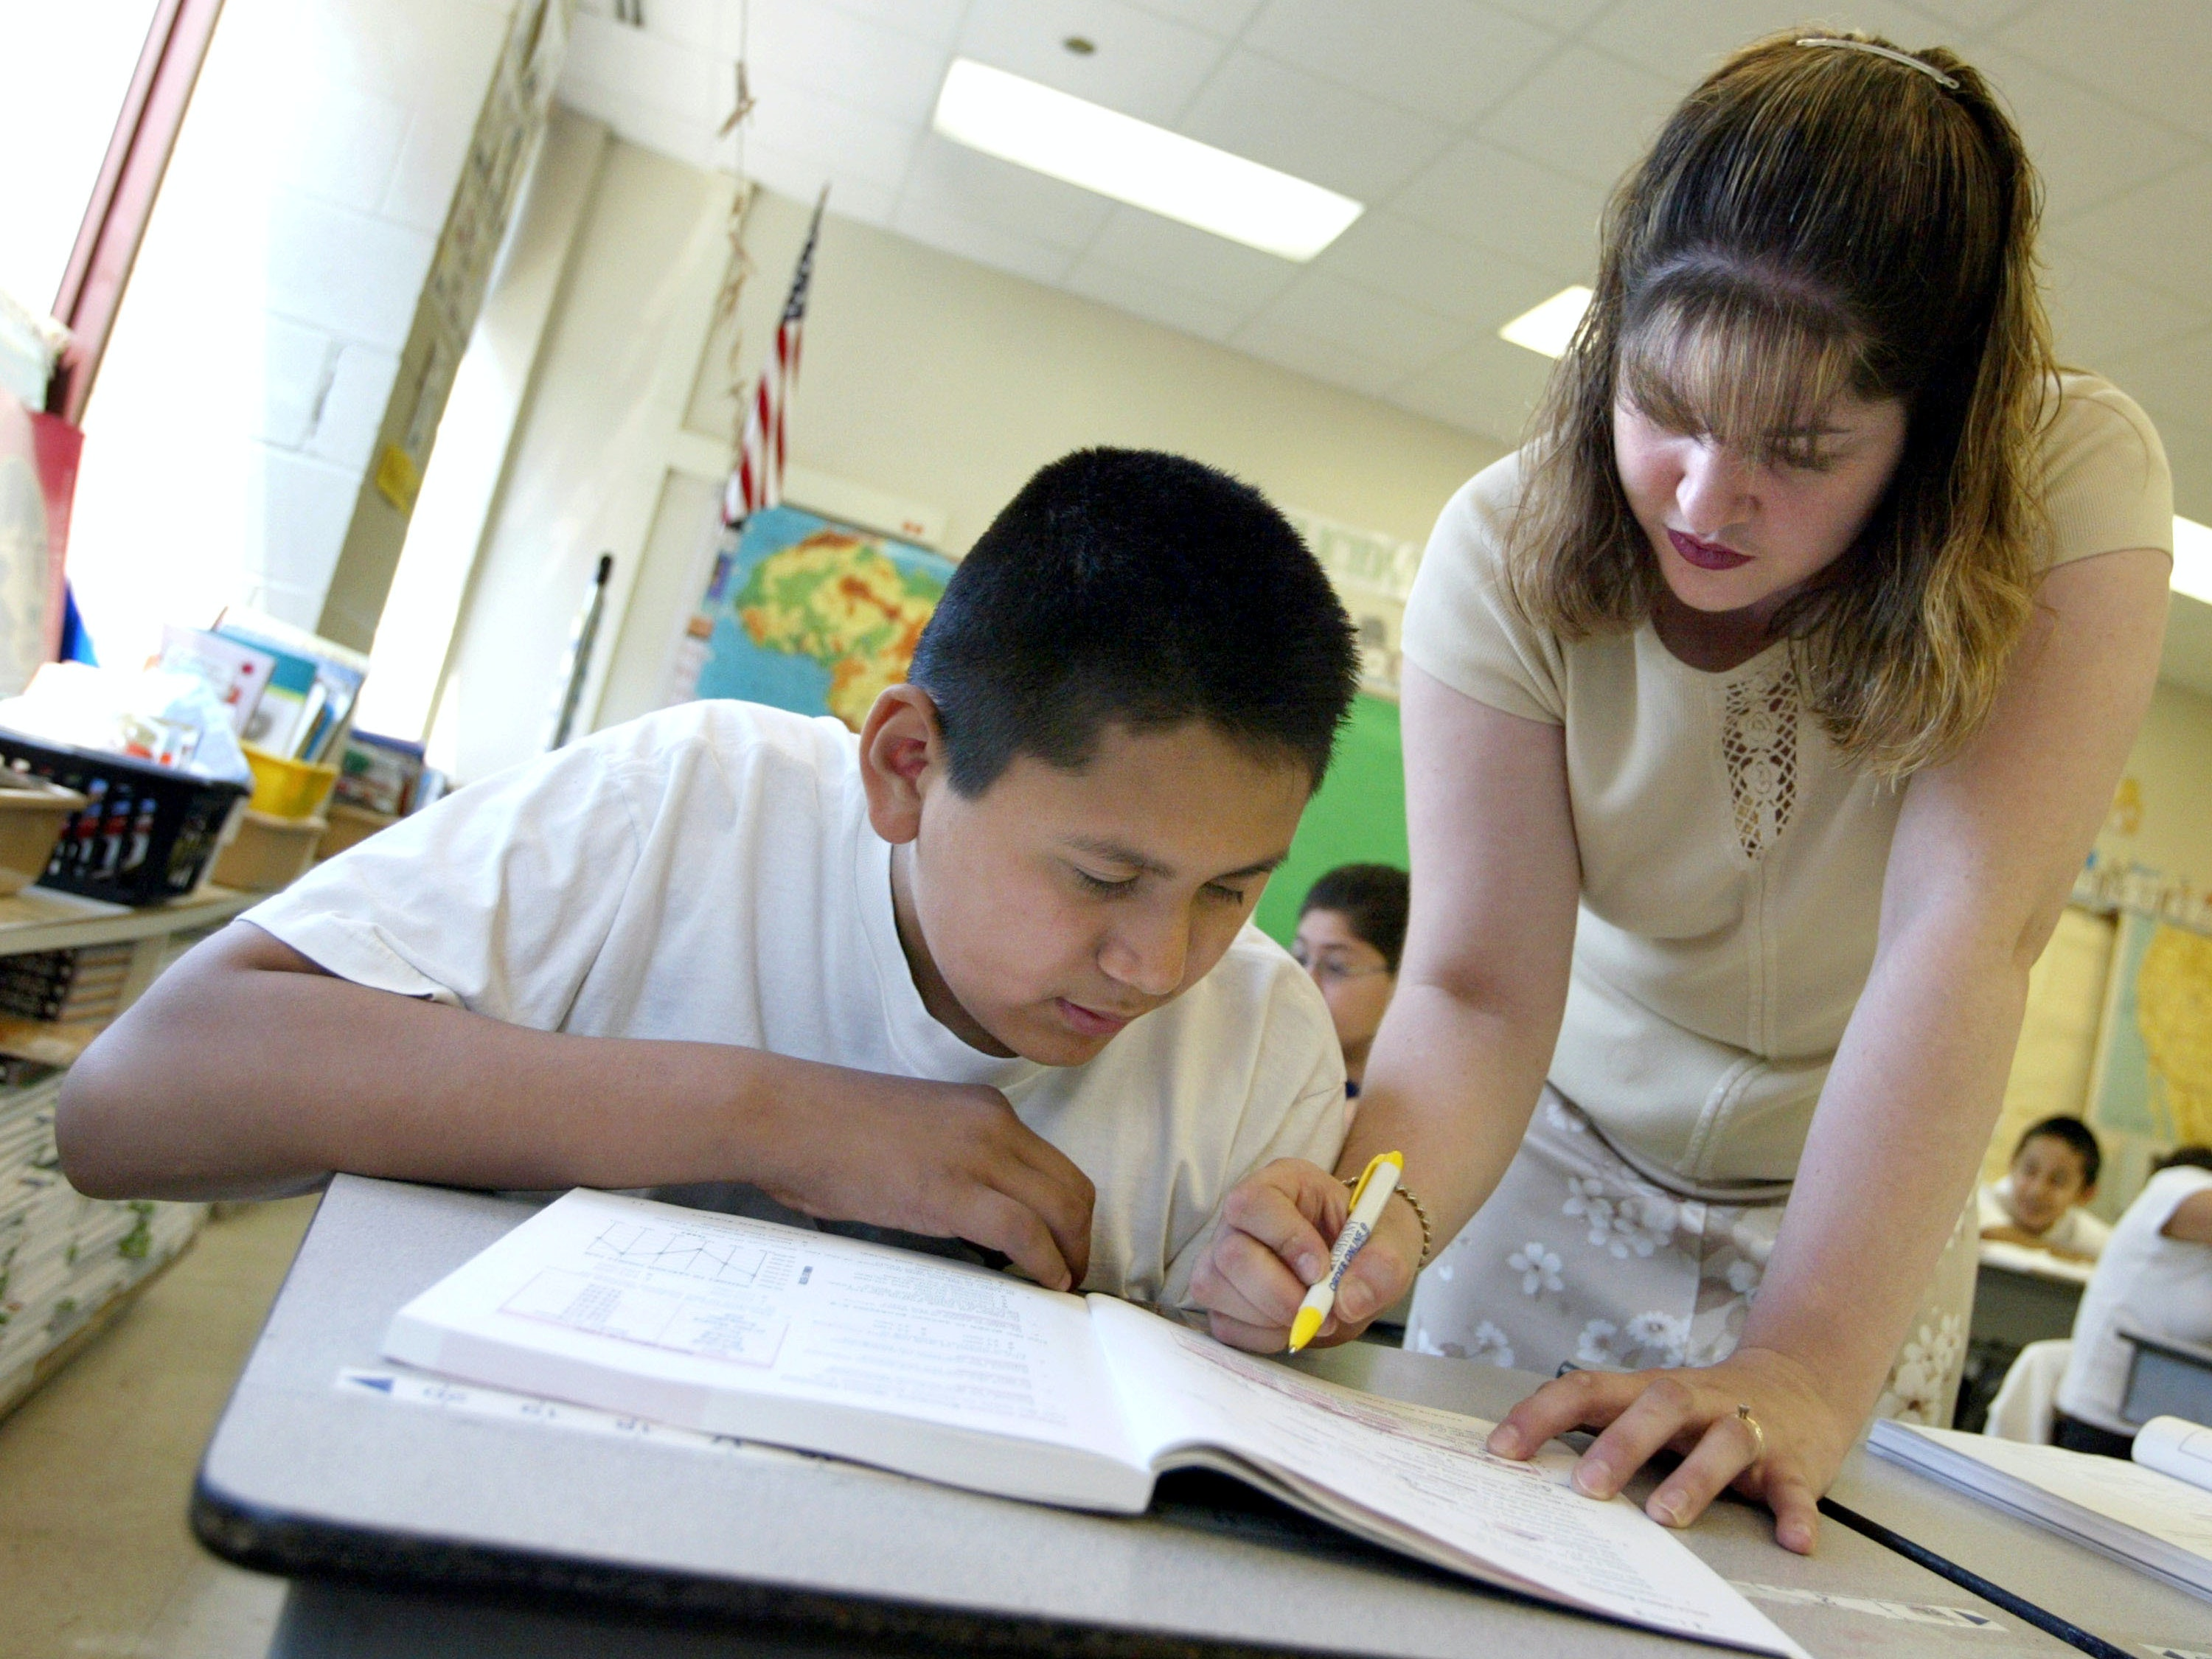 CHICAGO, IL - JULY 2:  Teacher Blanca Feliciano assists a student in her sixth-grade class during summer school July 2, 2003 in Chicago, Illinois. A record number of students are expected at summer school due to a strong showing for a new voluntary program for mid-tier students and strict application of non-ITBS (Iowa Tests of Basic Skills) test promotion standards.  (Photo by Tim Boyle/Getty Images)